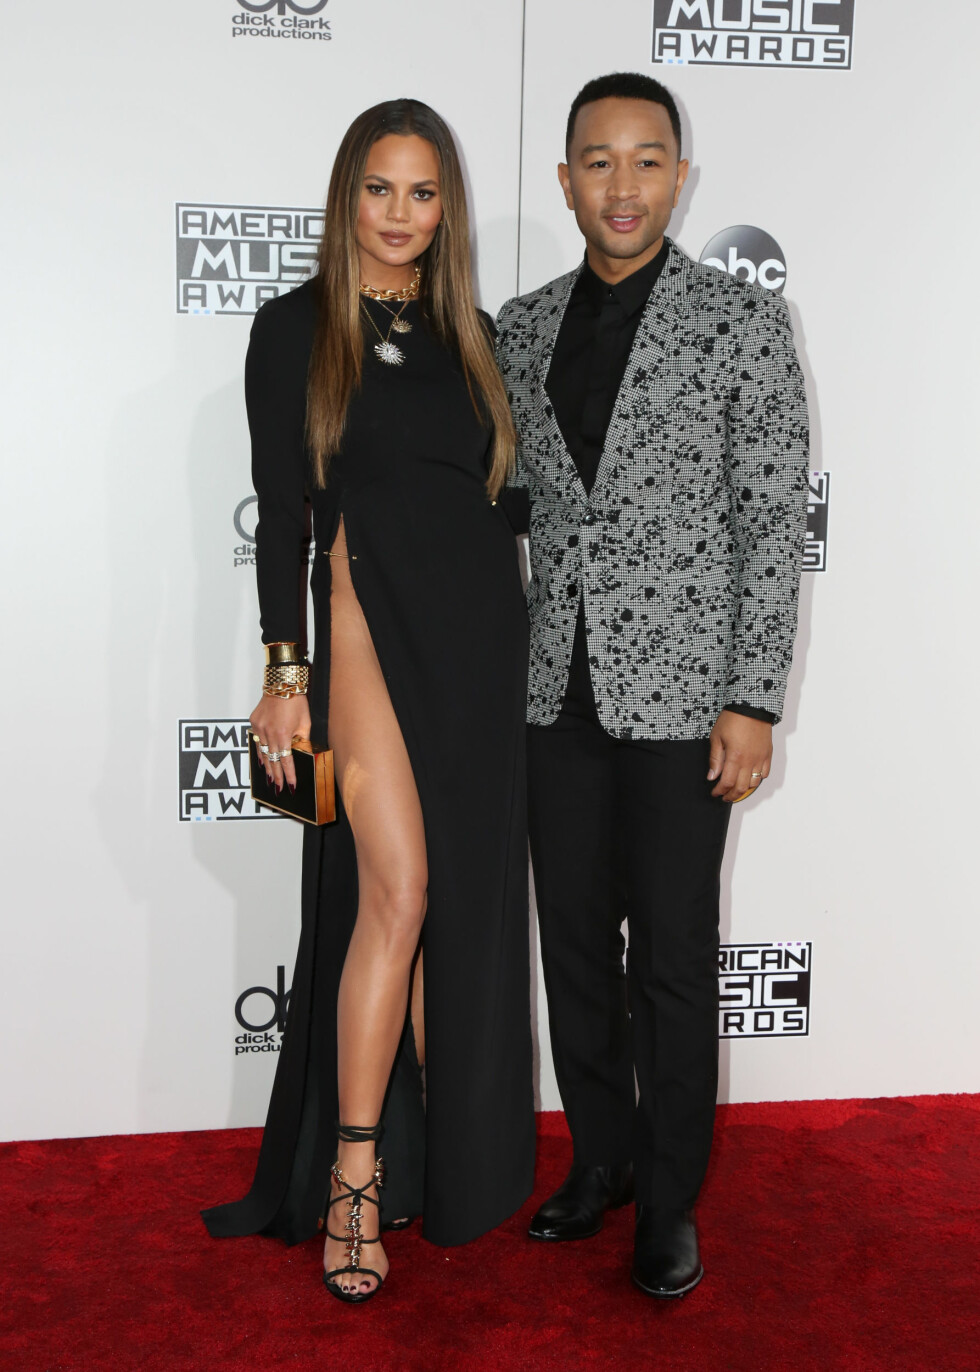 AMERICAN MUSIC AWARDS: Chrissy Teigen og John Legend. Foto: SipaUSA